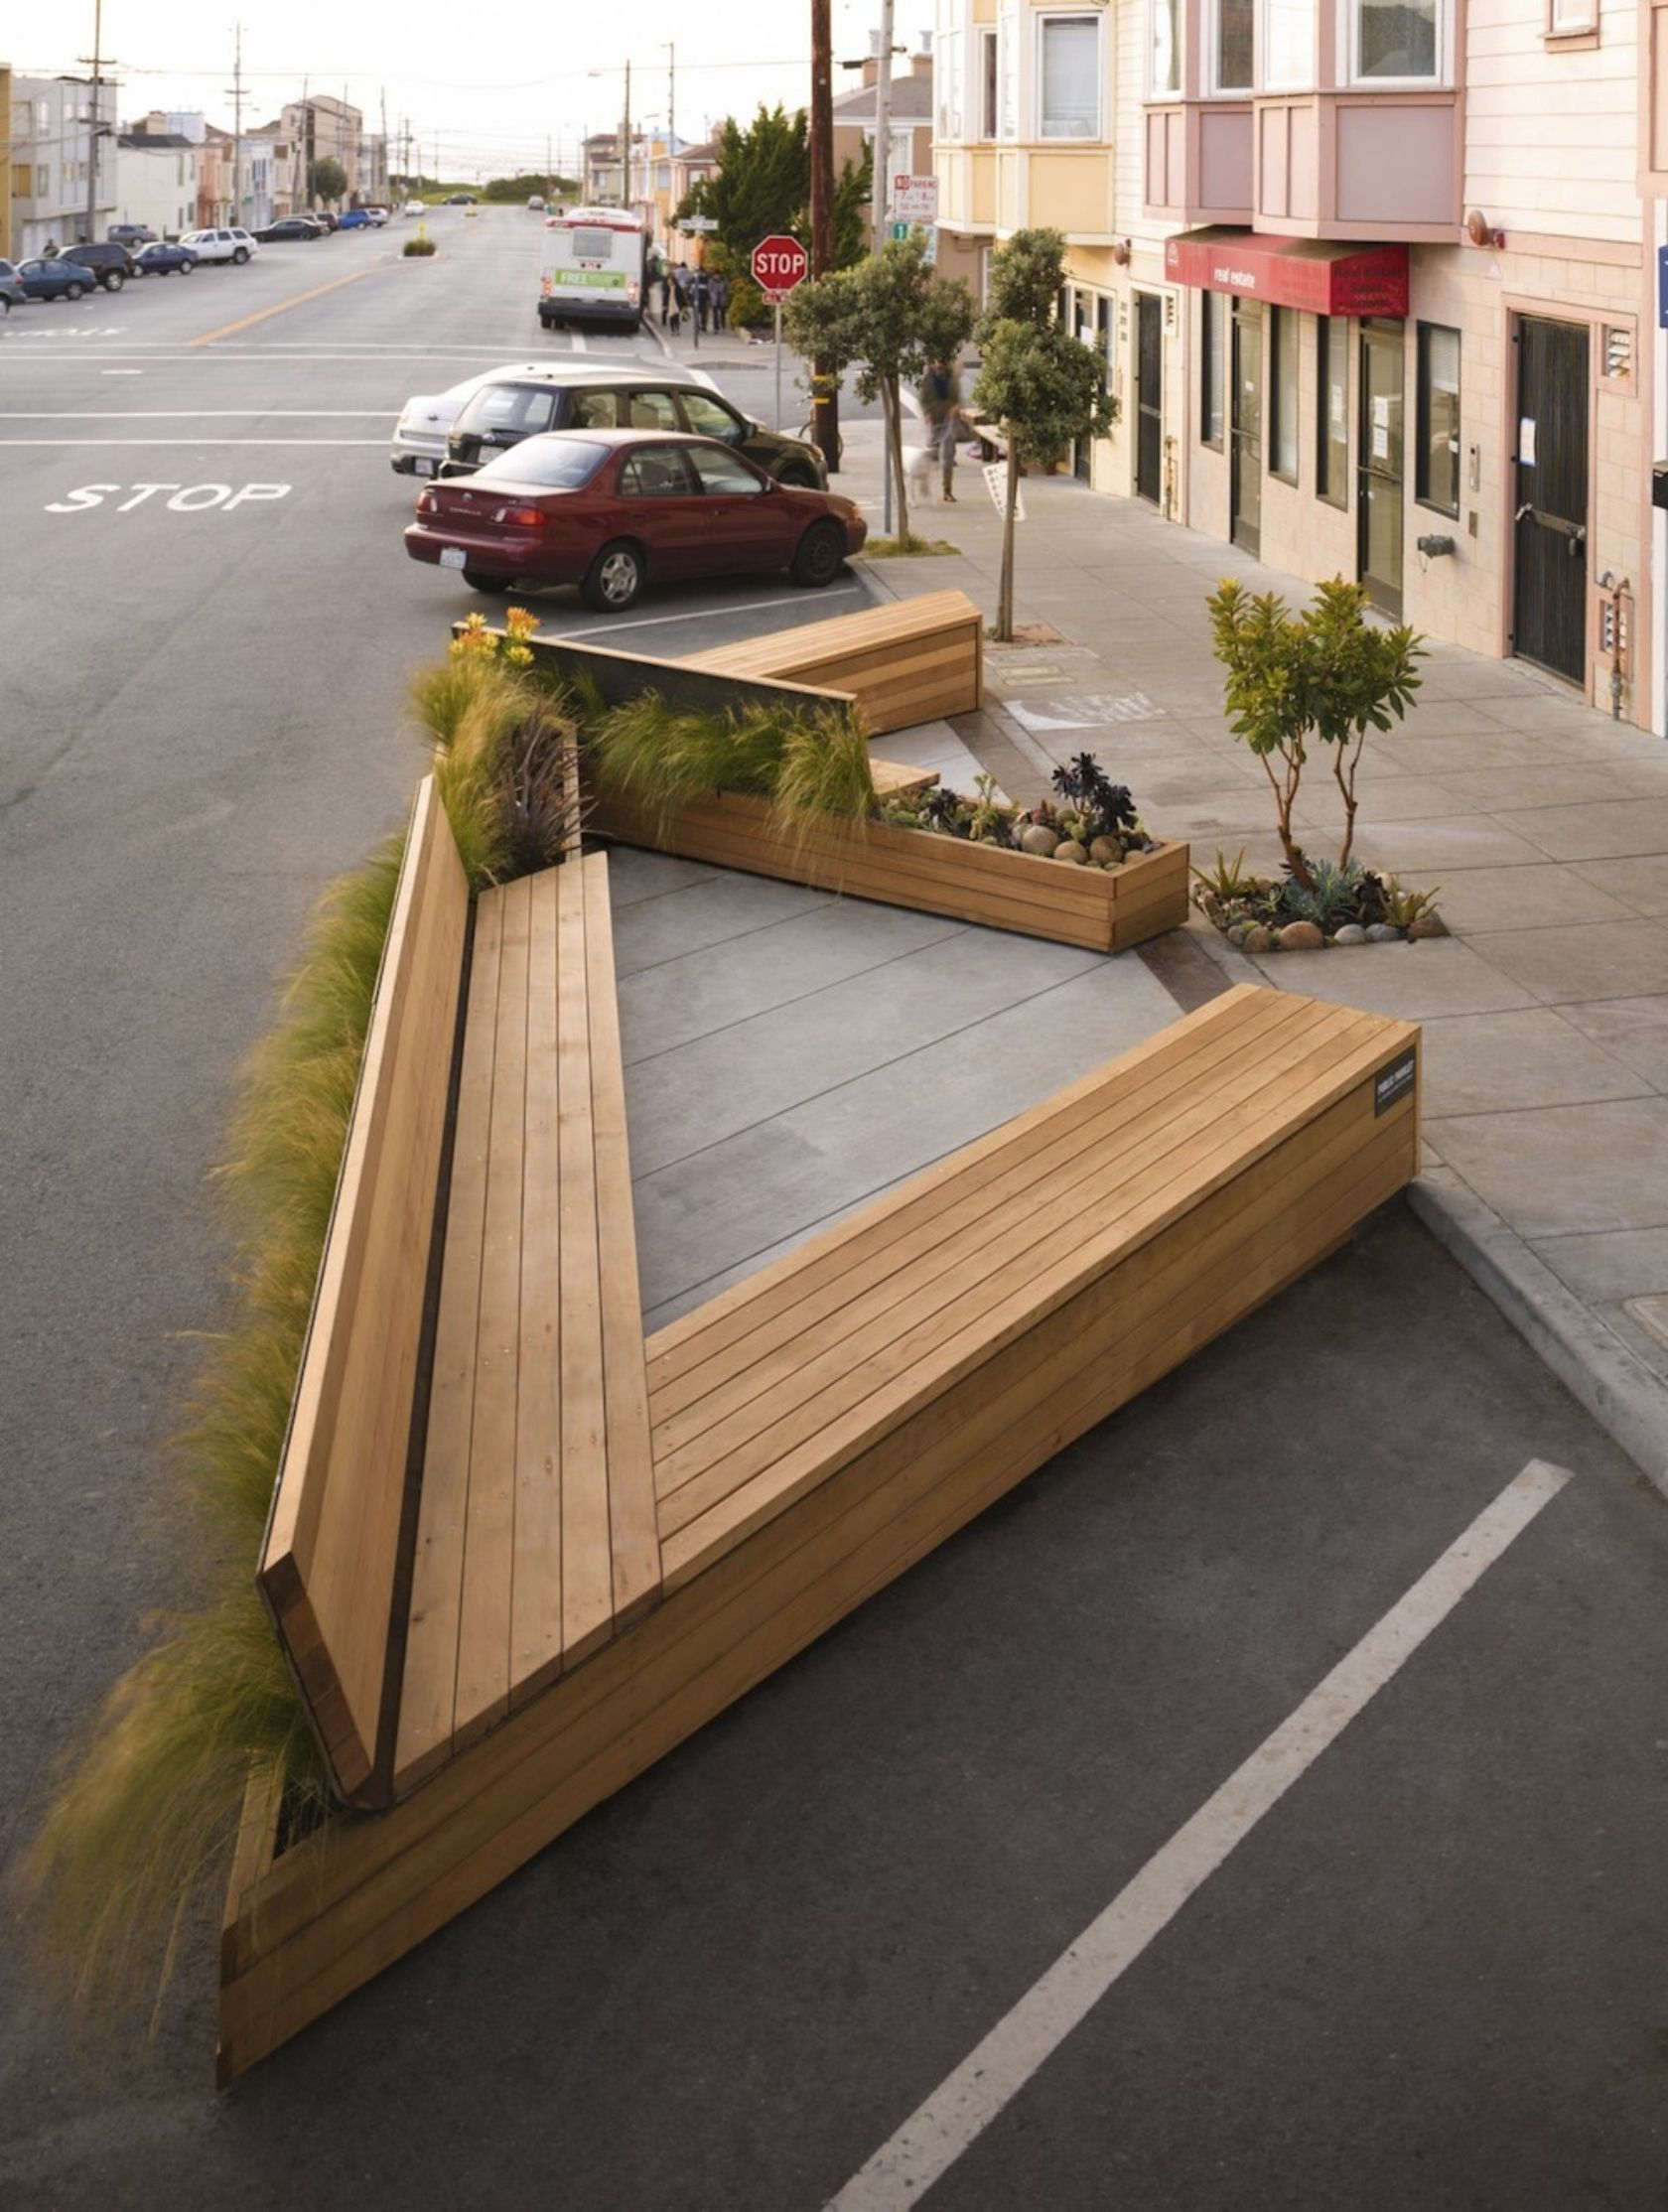 repurposed parking lot | Architizer - In Honor Of (PARK)ing Day ...